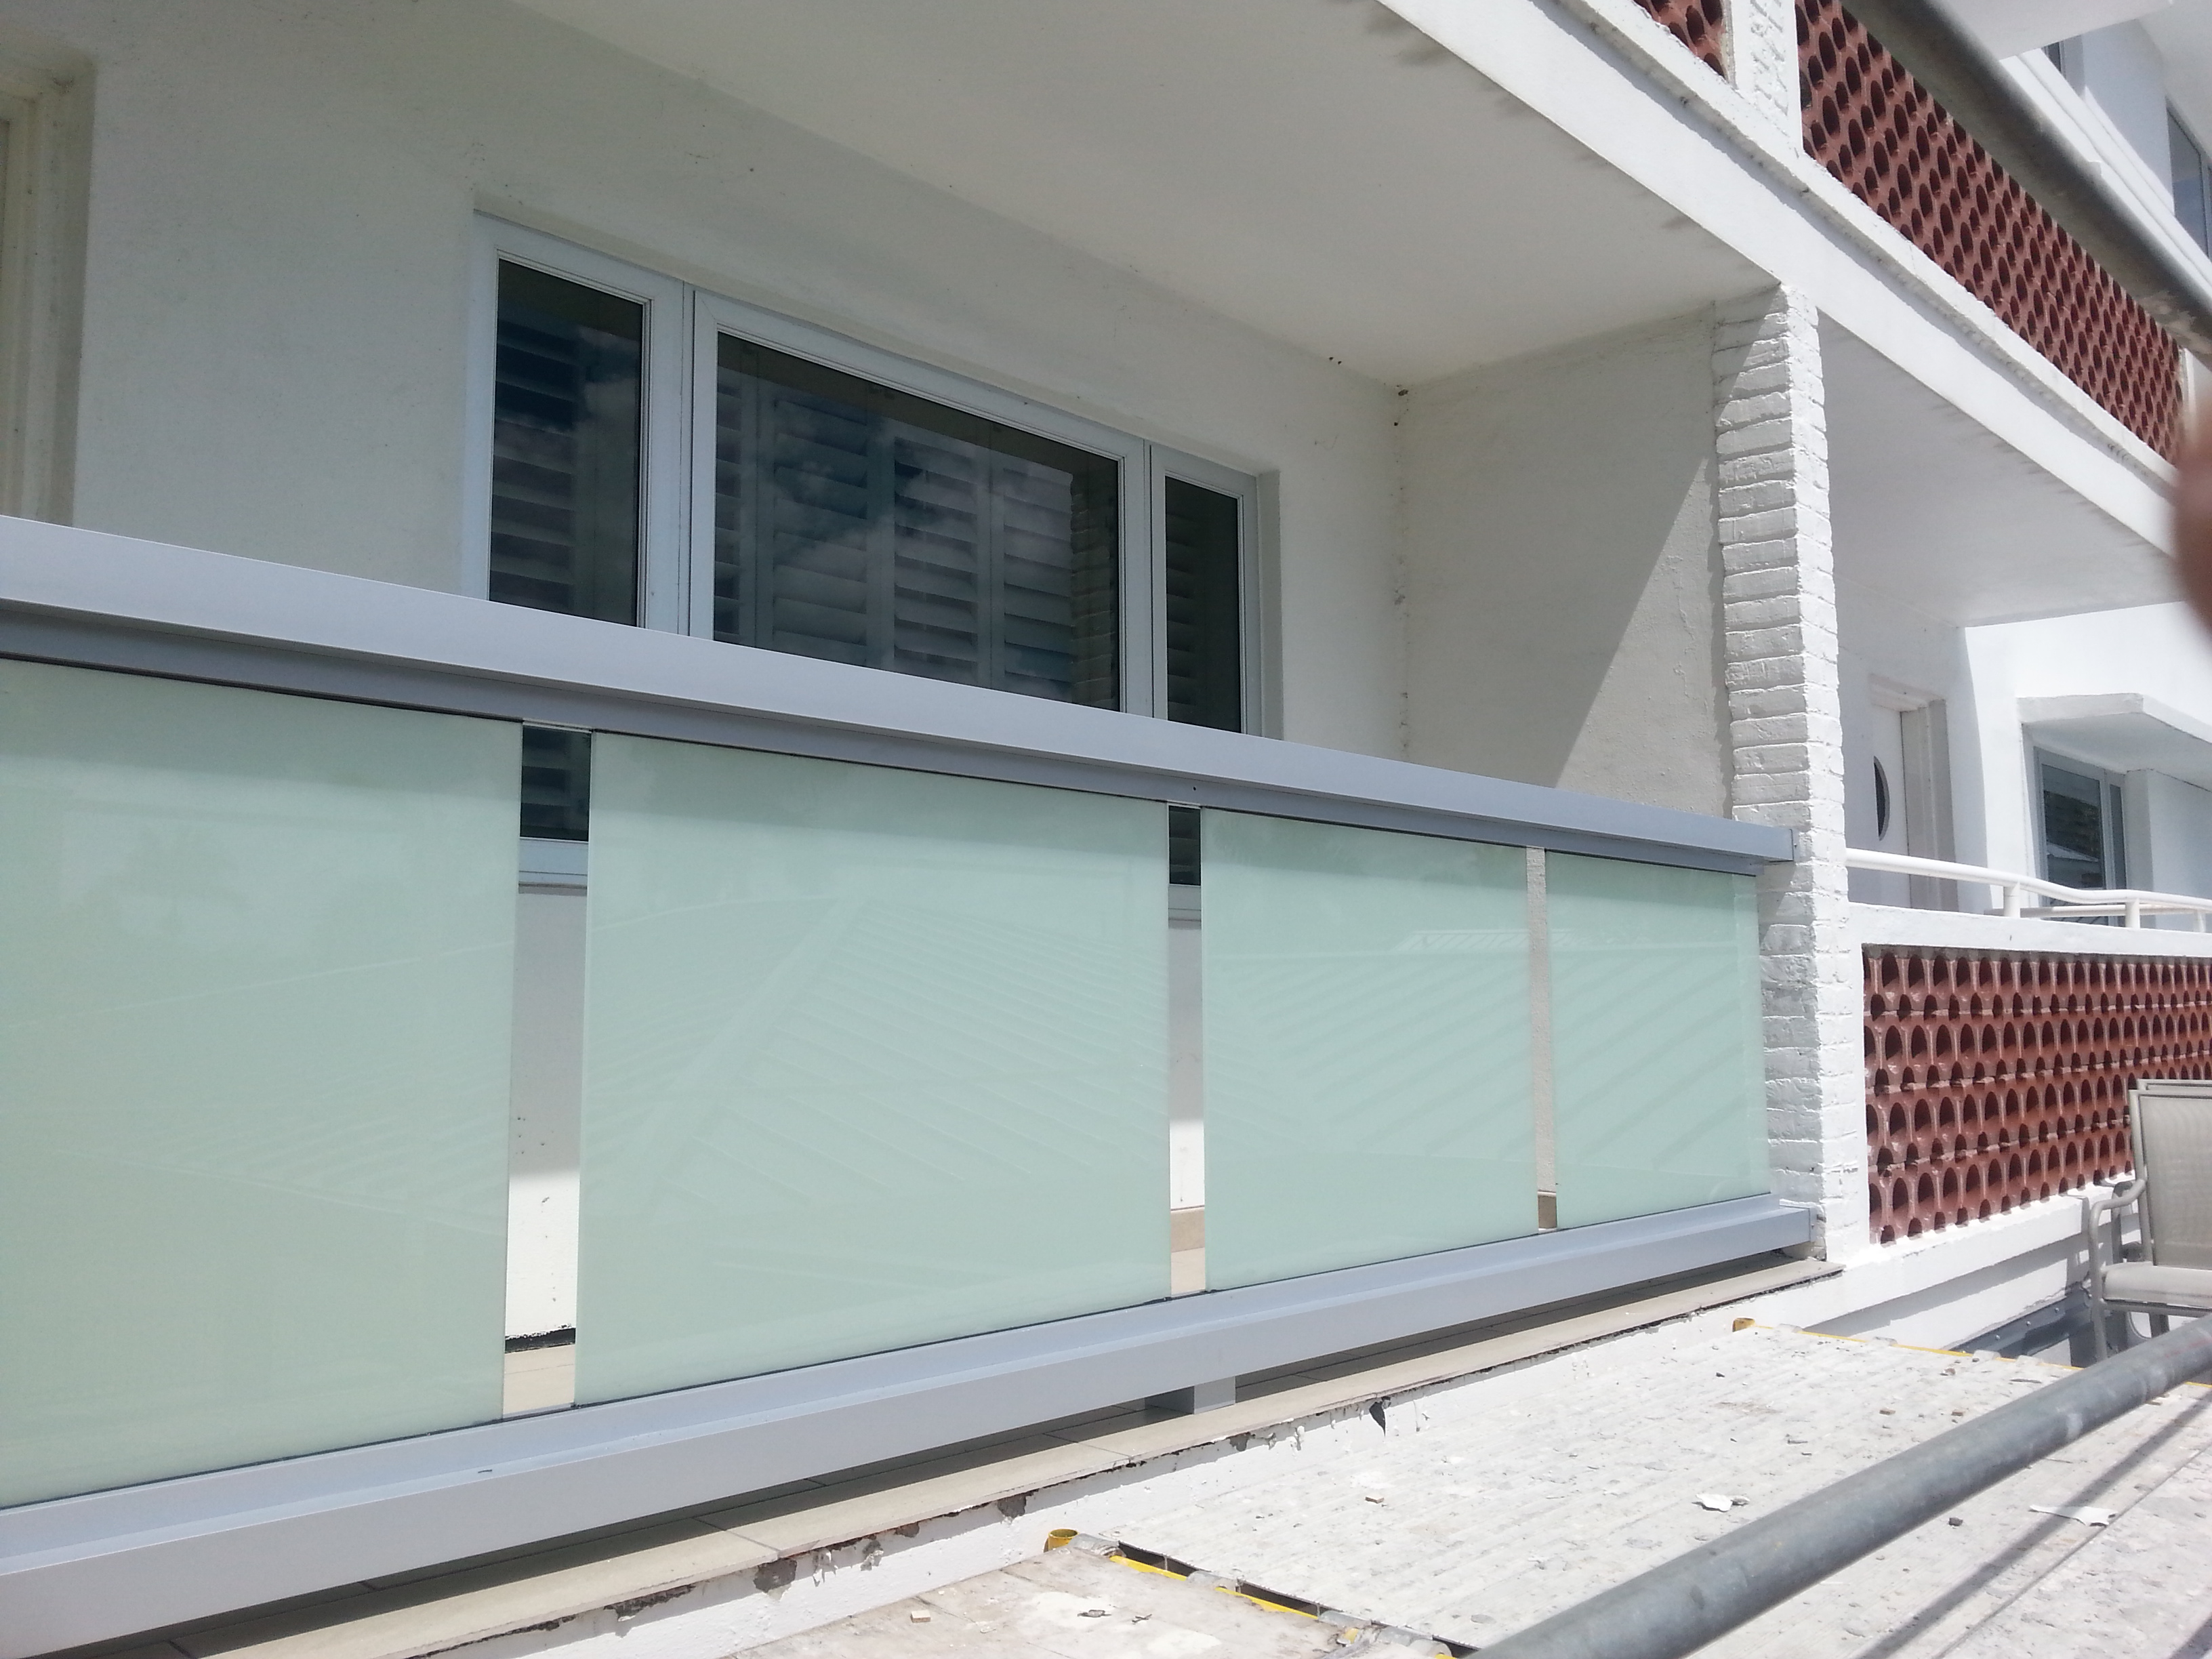 Glass panel railings on balcony